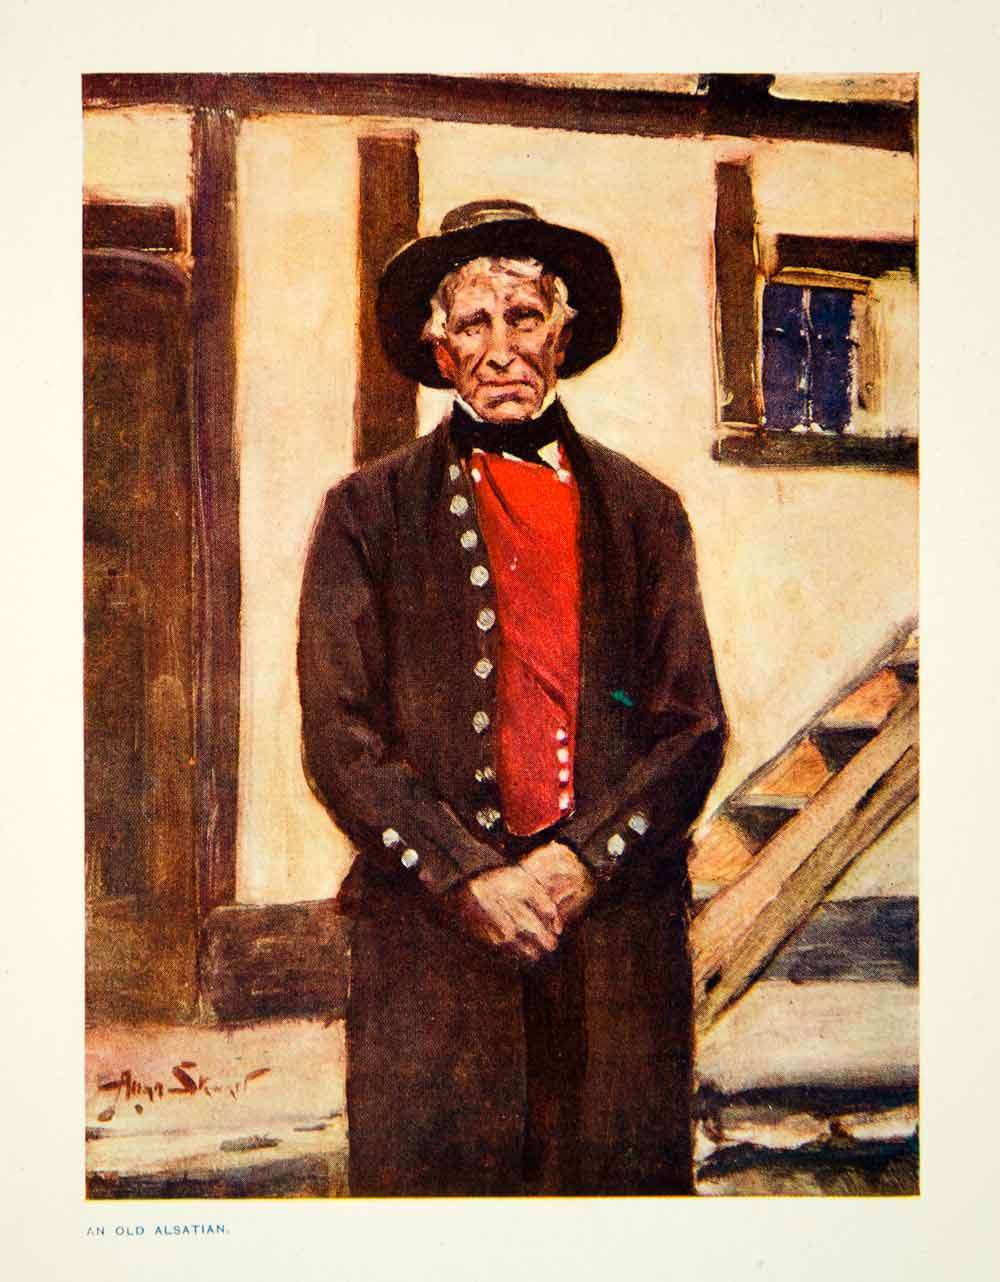 1915 Color Print Elderly Alsatian Traditional Costume Allan Stewart XEMA3